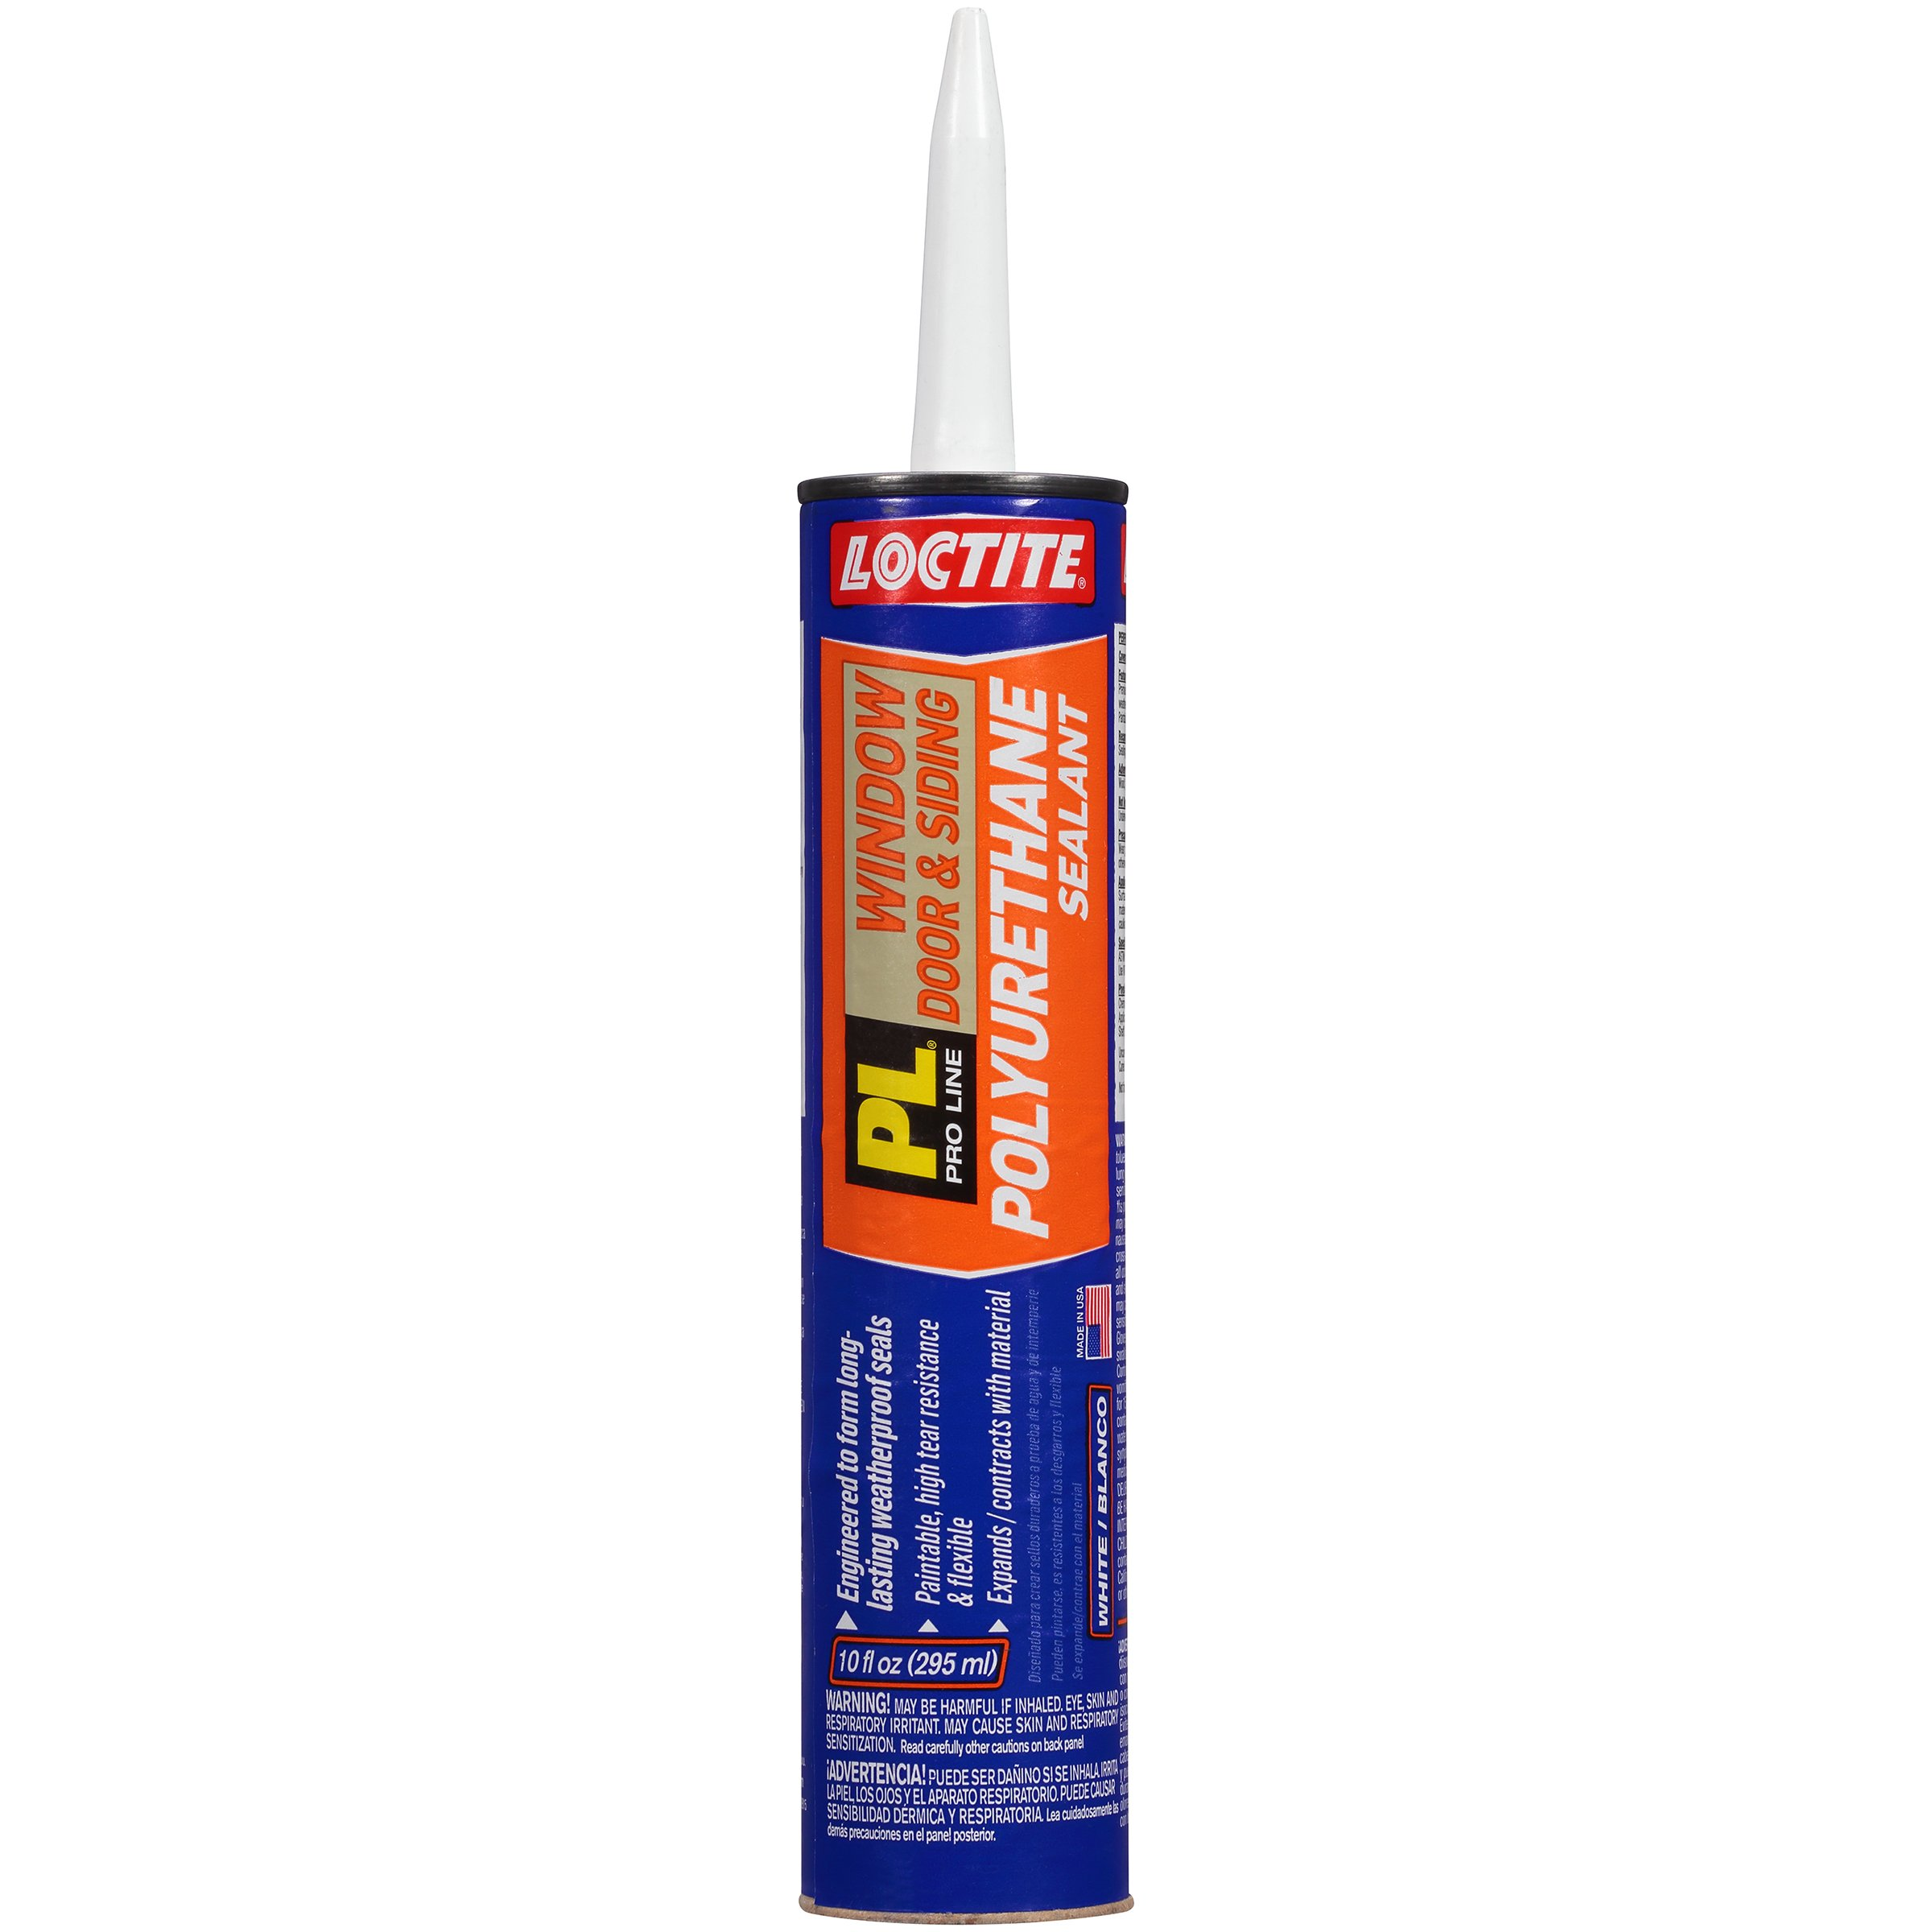 Loctite PL S40 Polyurethane Window, Door and Siding Sealant, 10 Ounce Cartridge, White, 12-Pack (1618182-12)